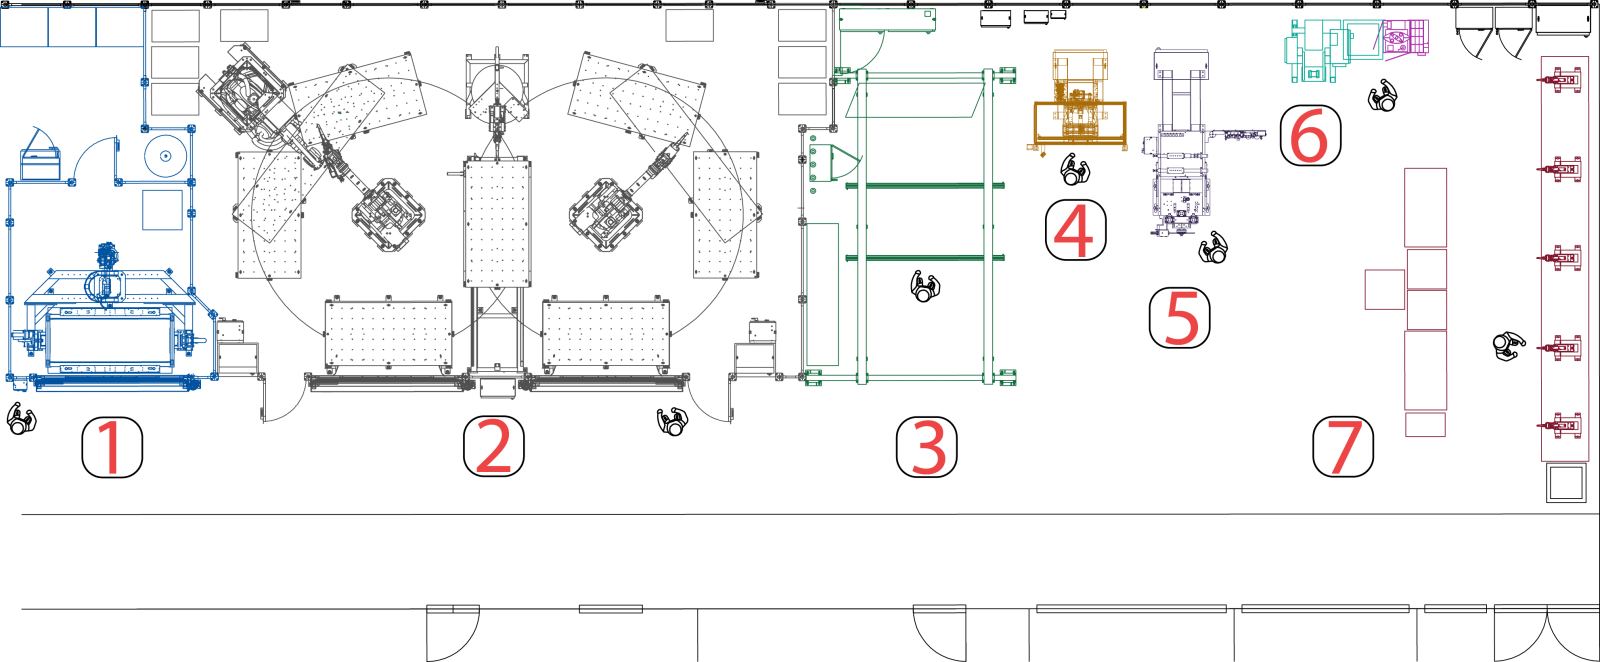 Donald Beneteau Centre of Excellence floor plan